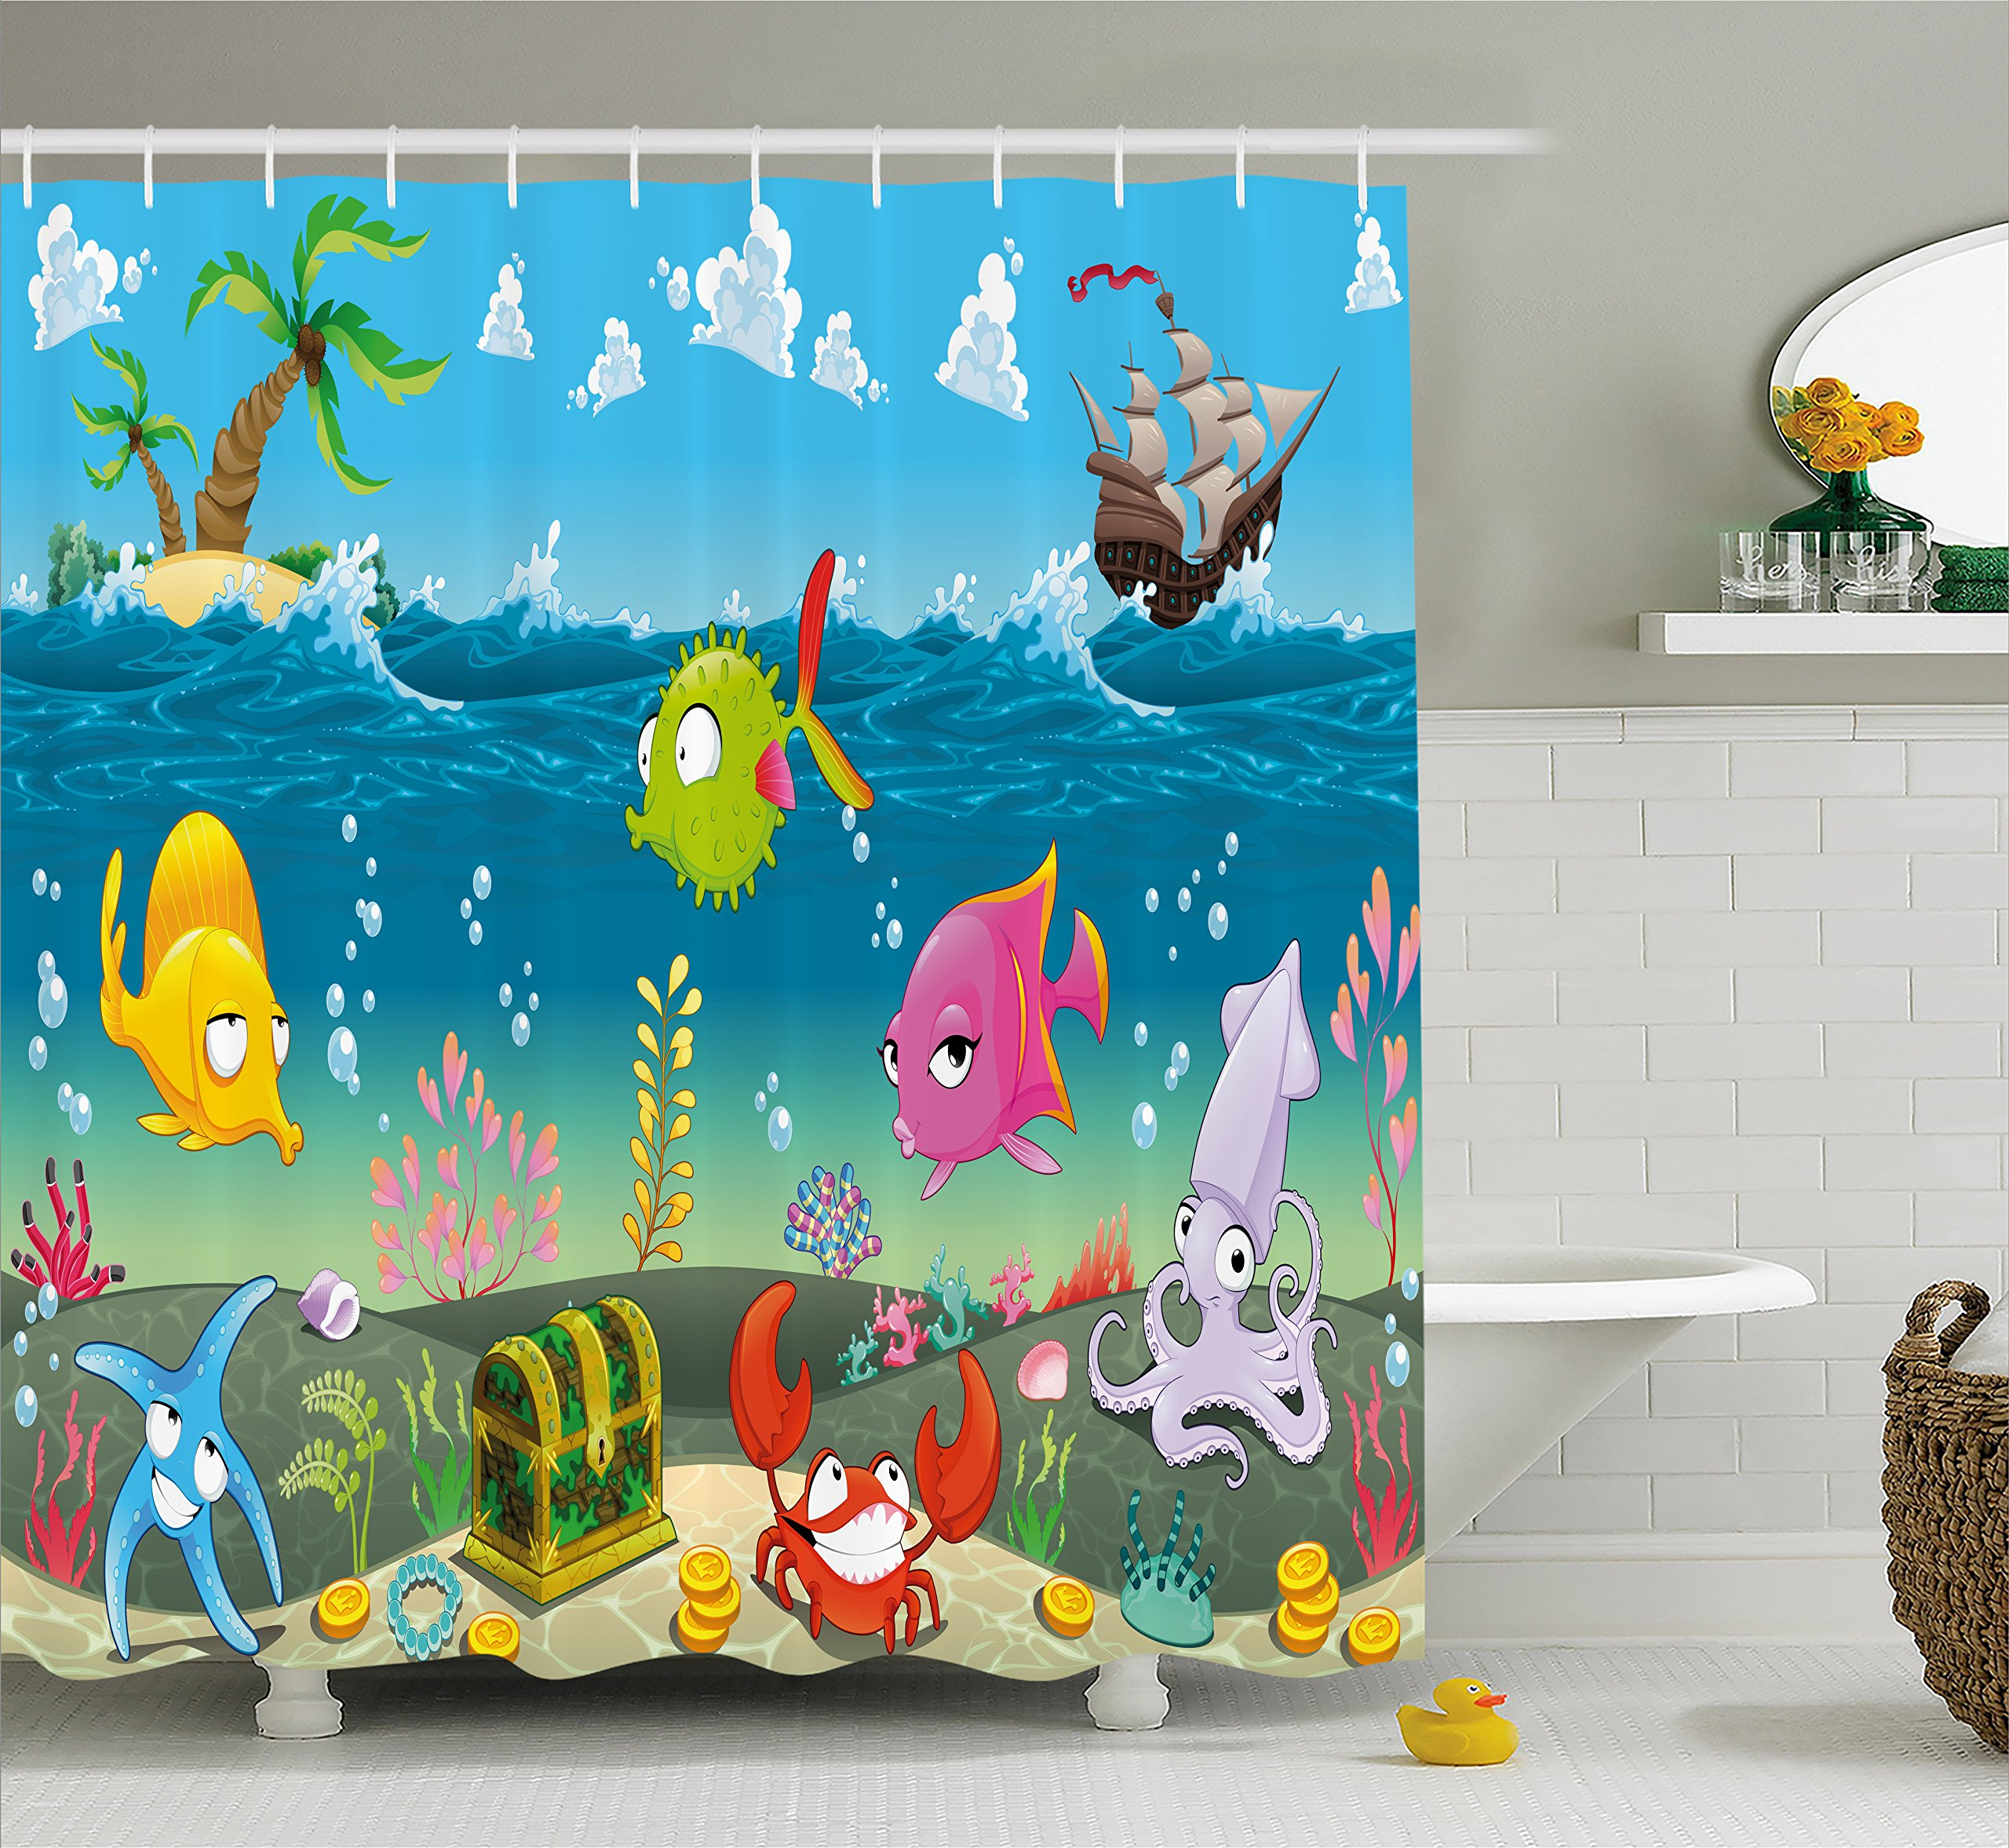 Ambesonne Kids Shower Curtain by, Funny Sea Animals Underwater Ocean View with Sail Boat Palm Trees Cartoon Artwork, Fabric Bathroom Decor Set with Hooks, 70 Inches, Multicolor